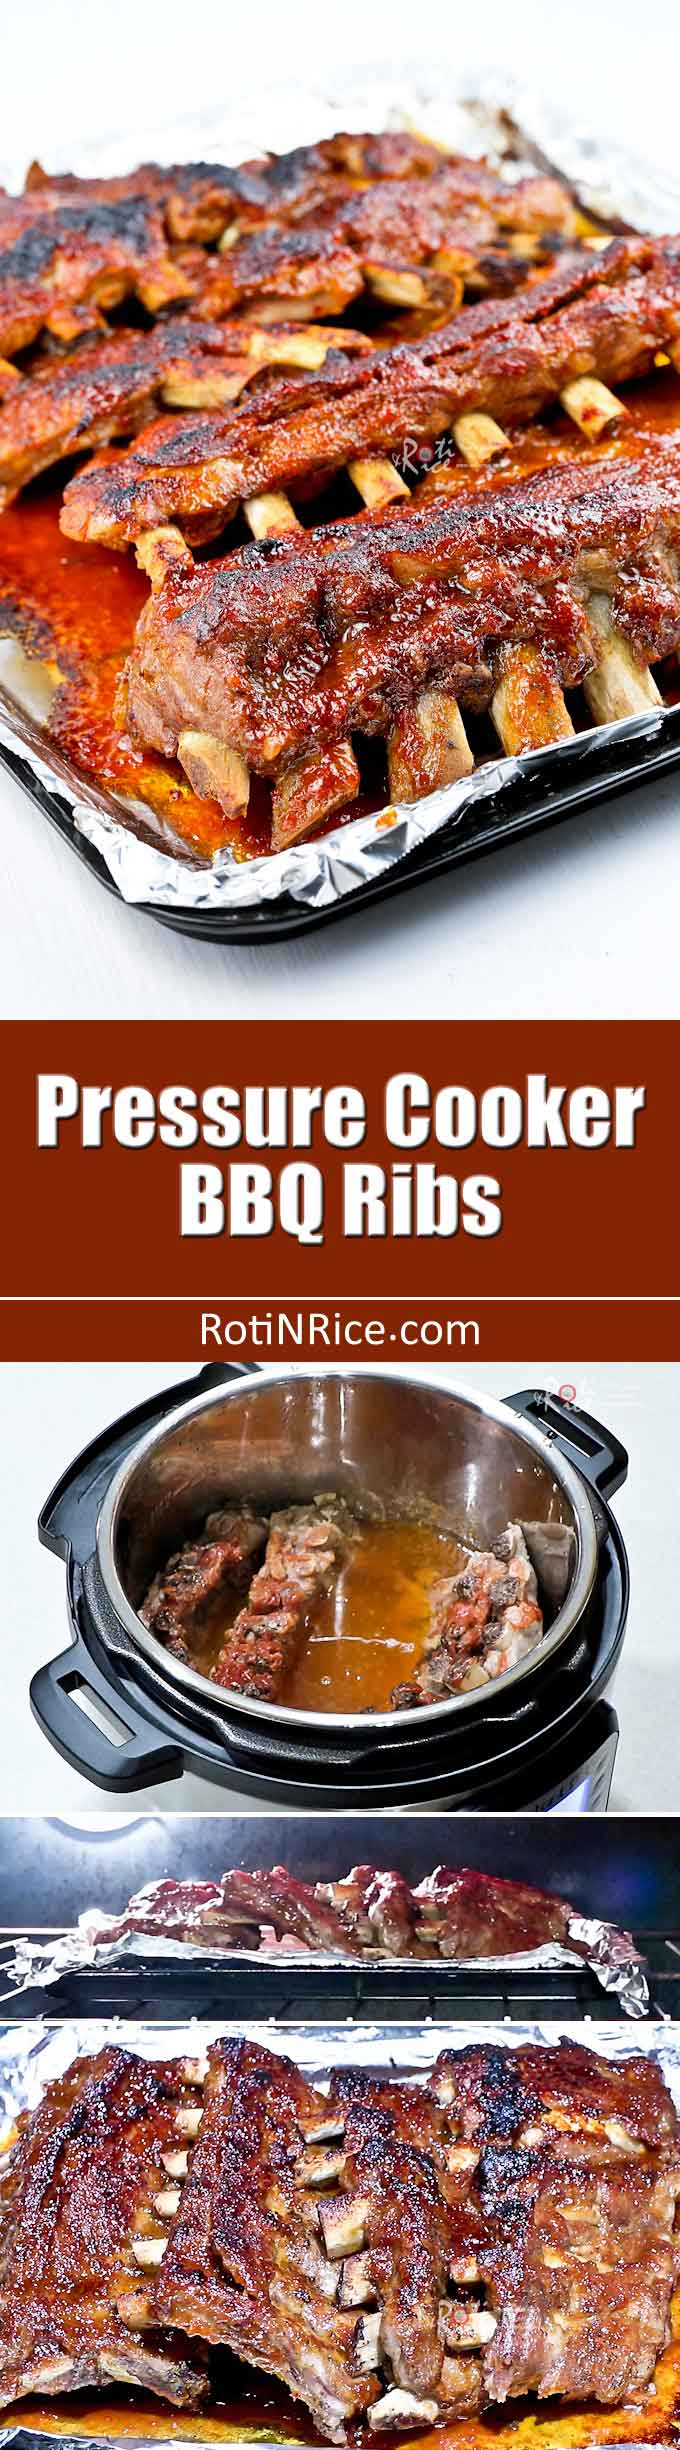 Make this fall-off-the-bone tender Pressure Cooker BBQ Ribs in just over an hour. Broil for a few minutes to get that beautiful finish. | RotiNRice.com